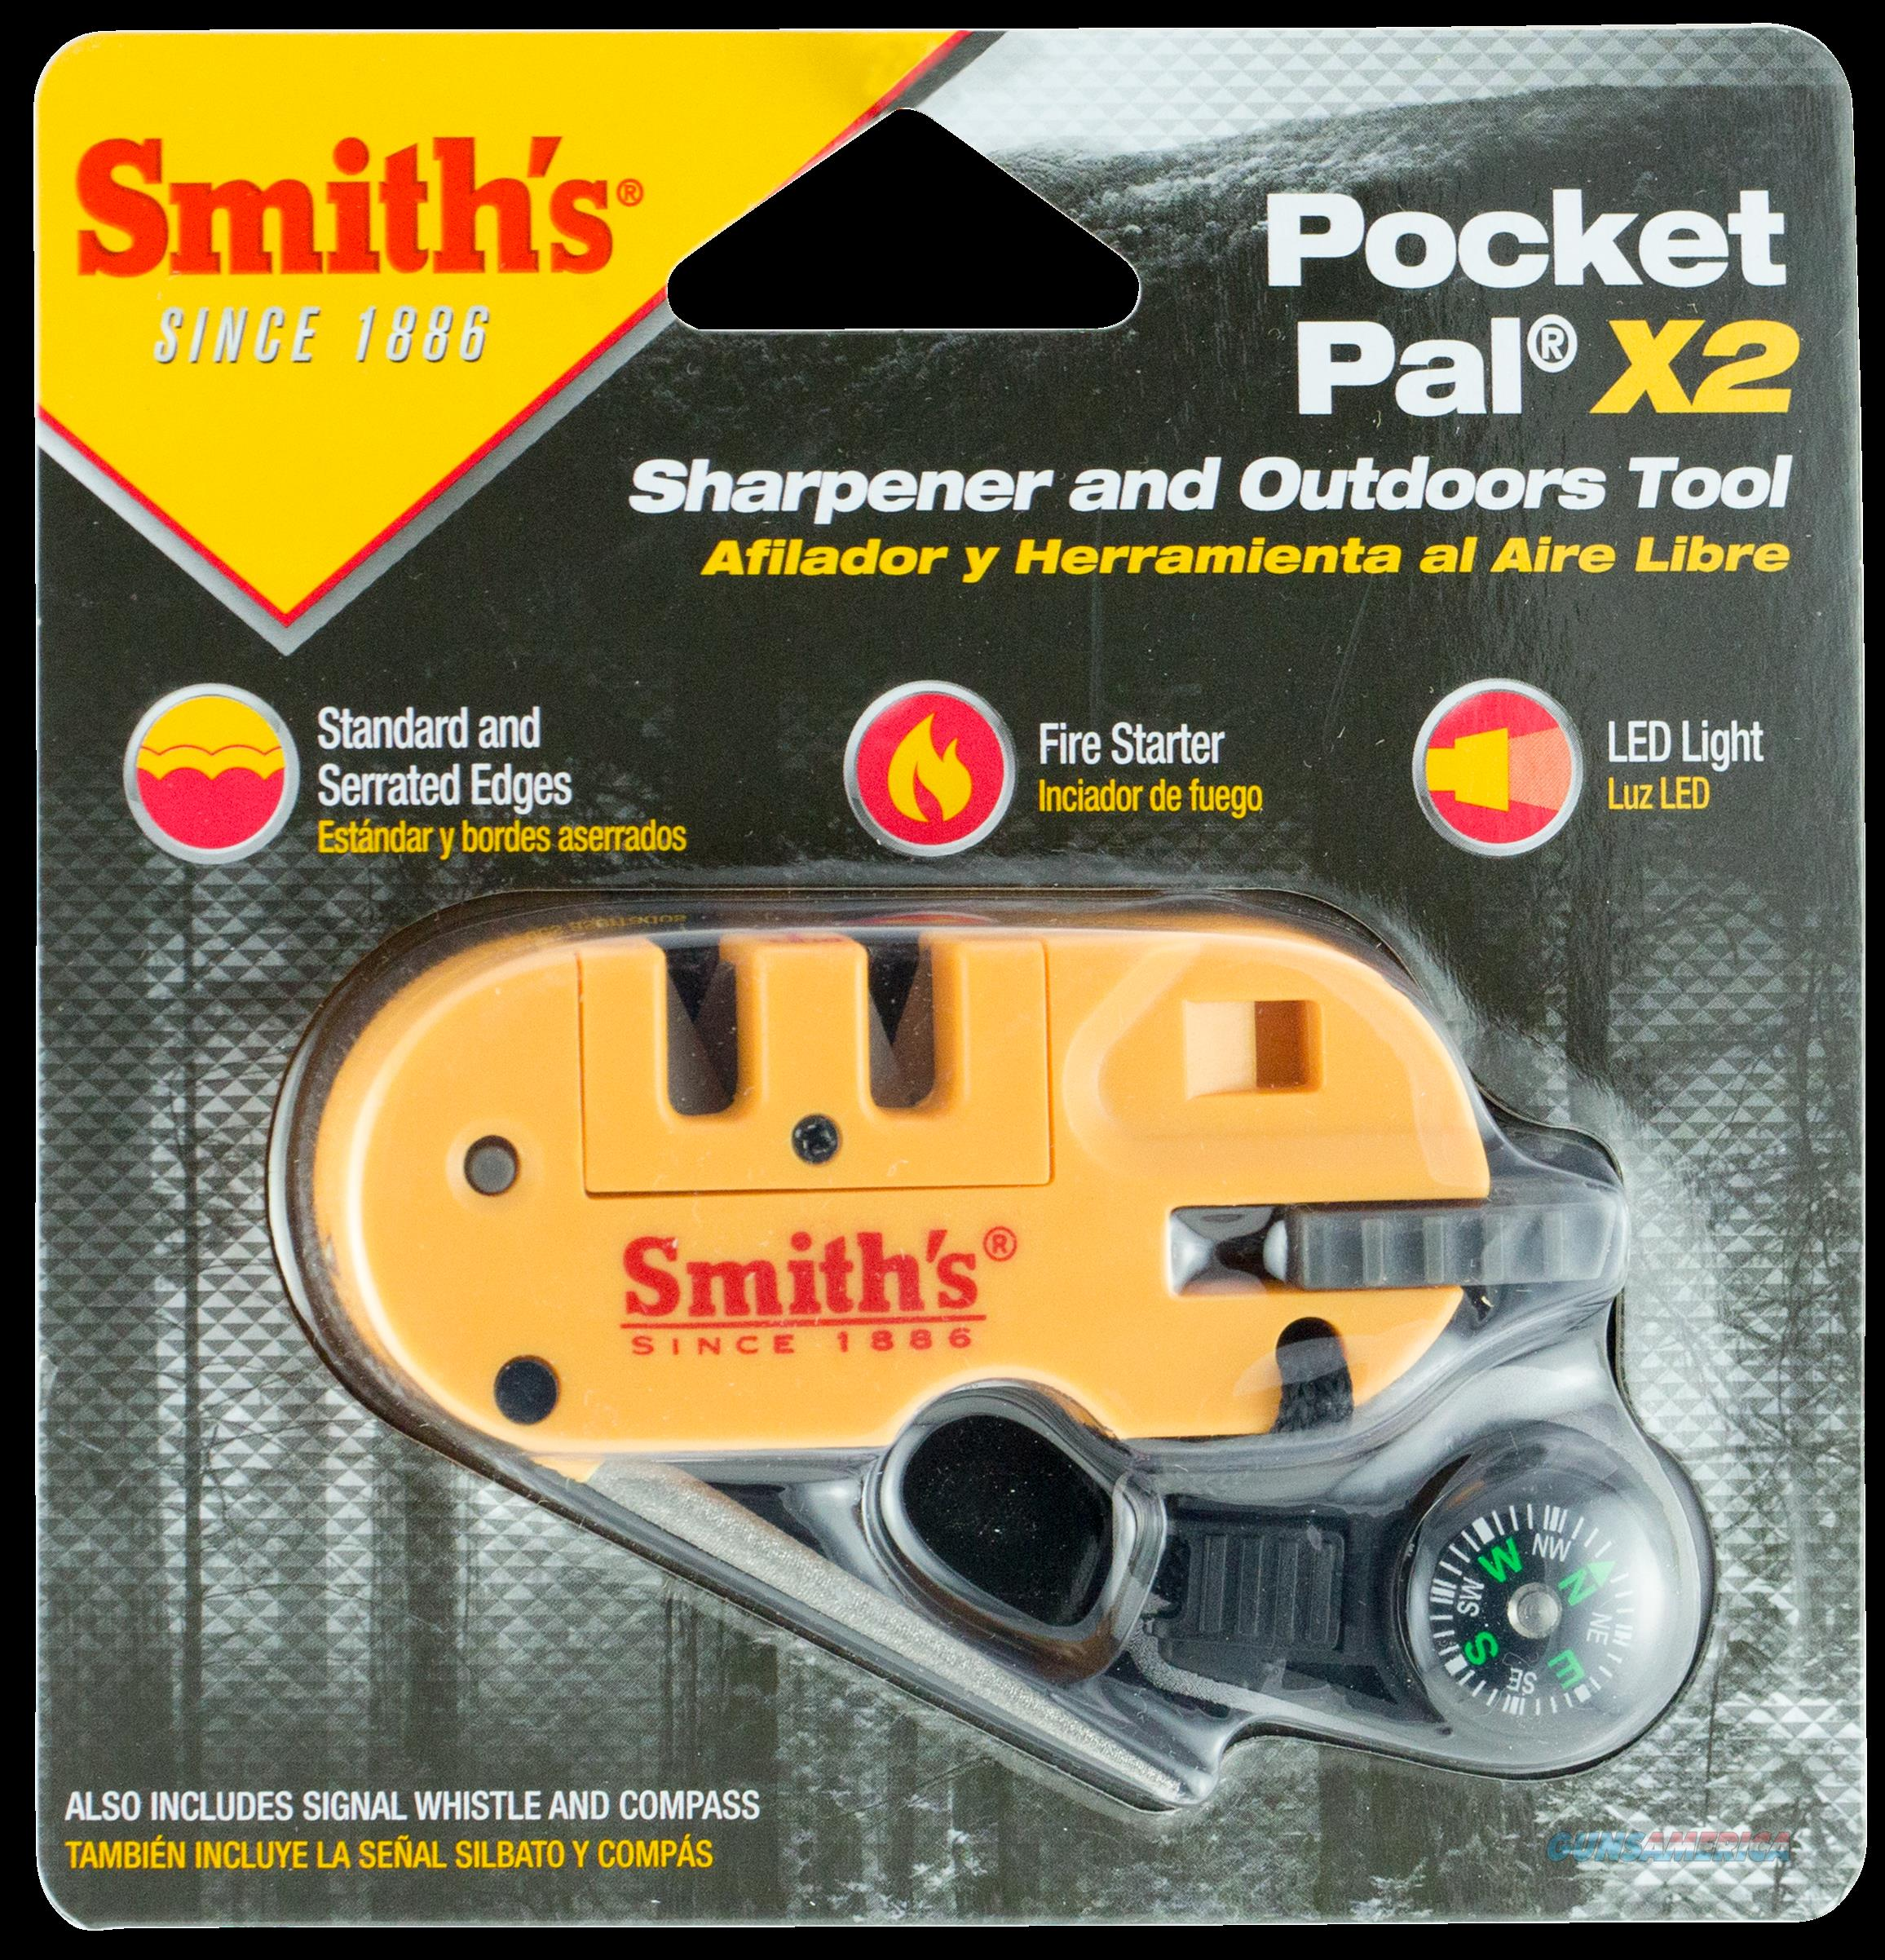 Smiths Products Pocket Pal, Smiths 50364 Pocket Pal 2 Sharpnr-tool  Guns > Pistols > 1911 Pistol Copies (non-Colt)